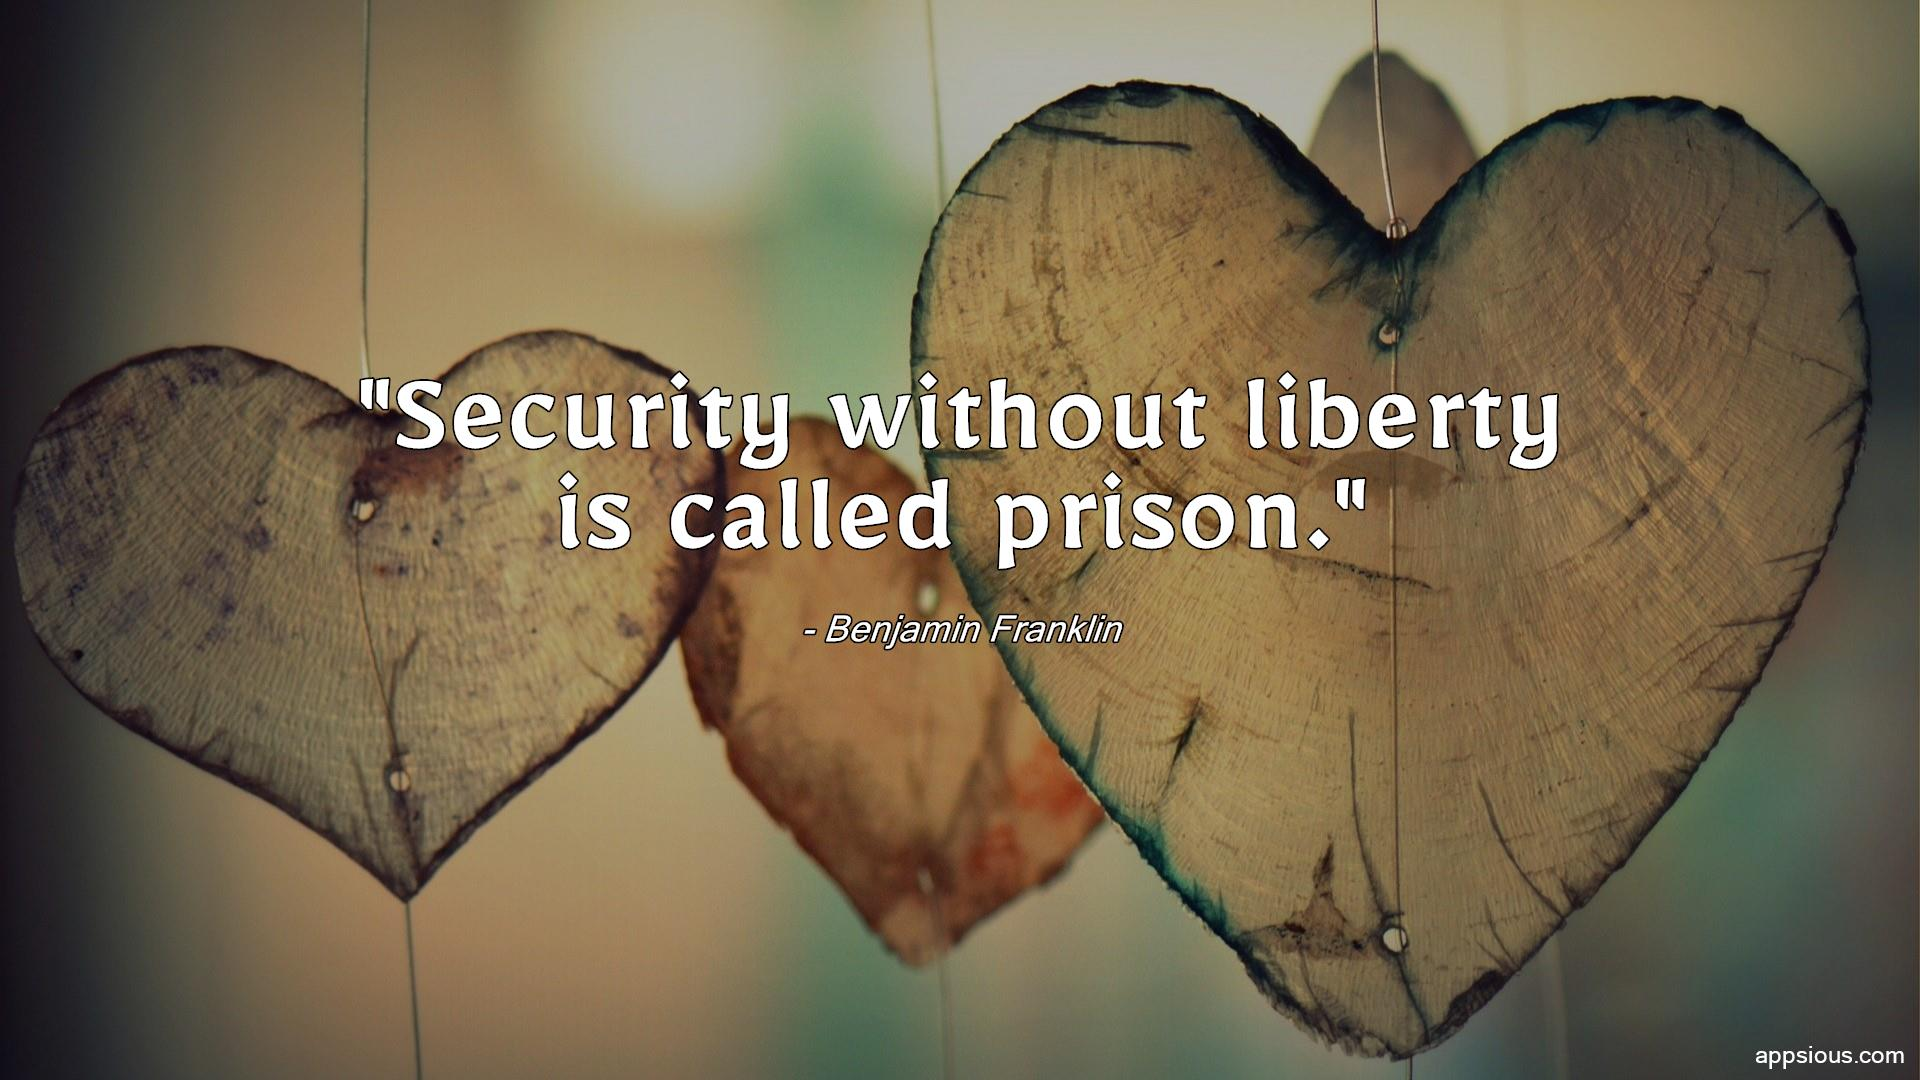 Security without liberty is called prison.